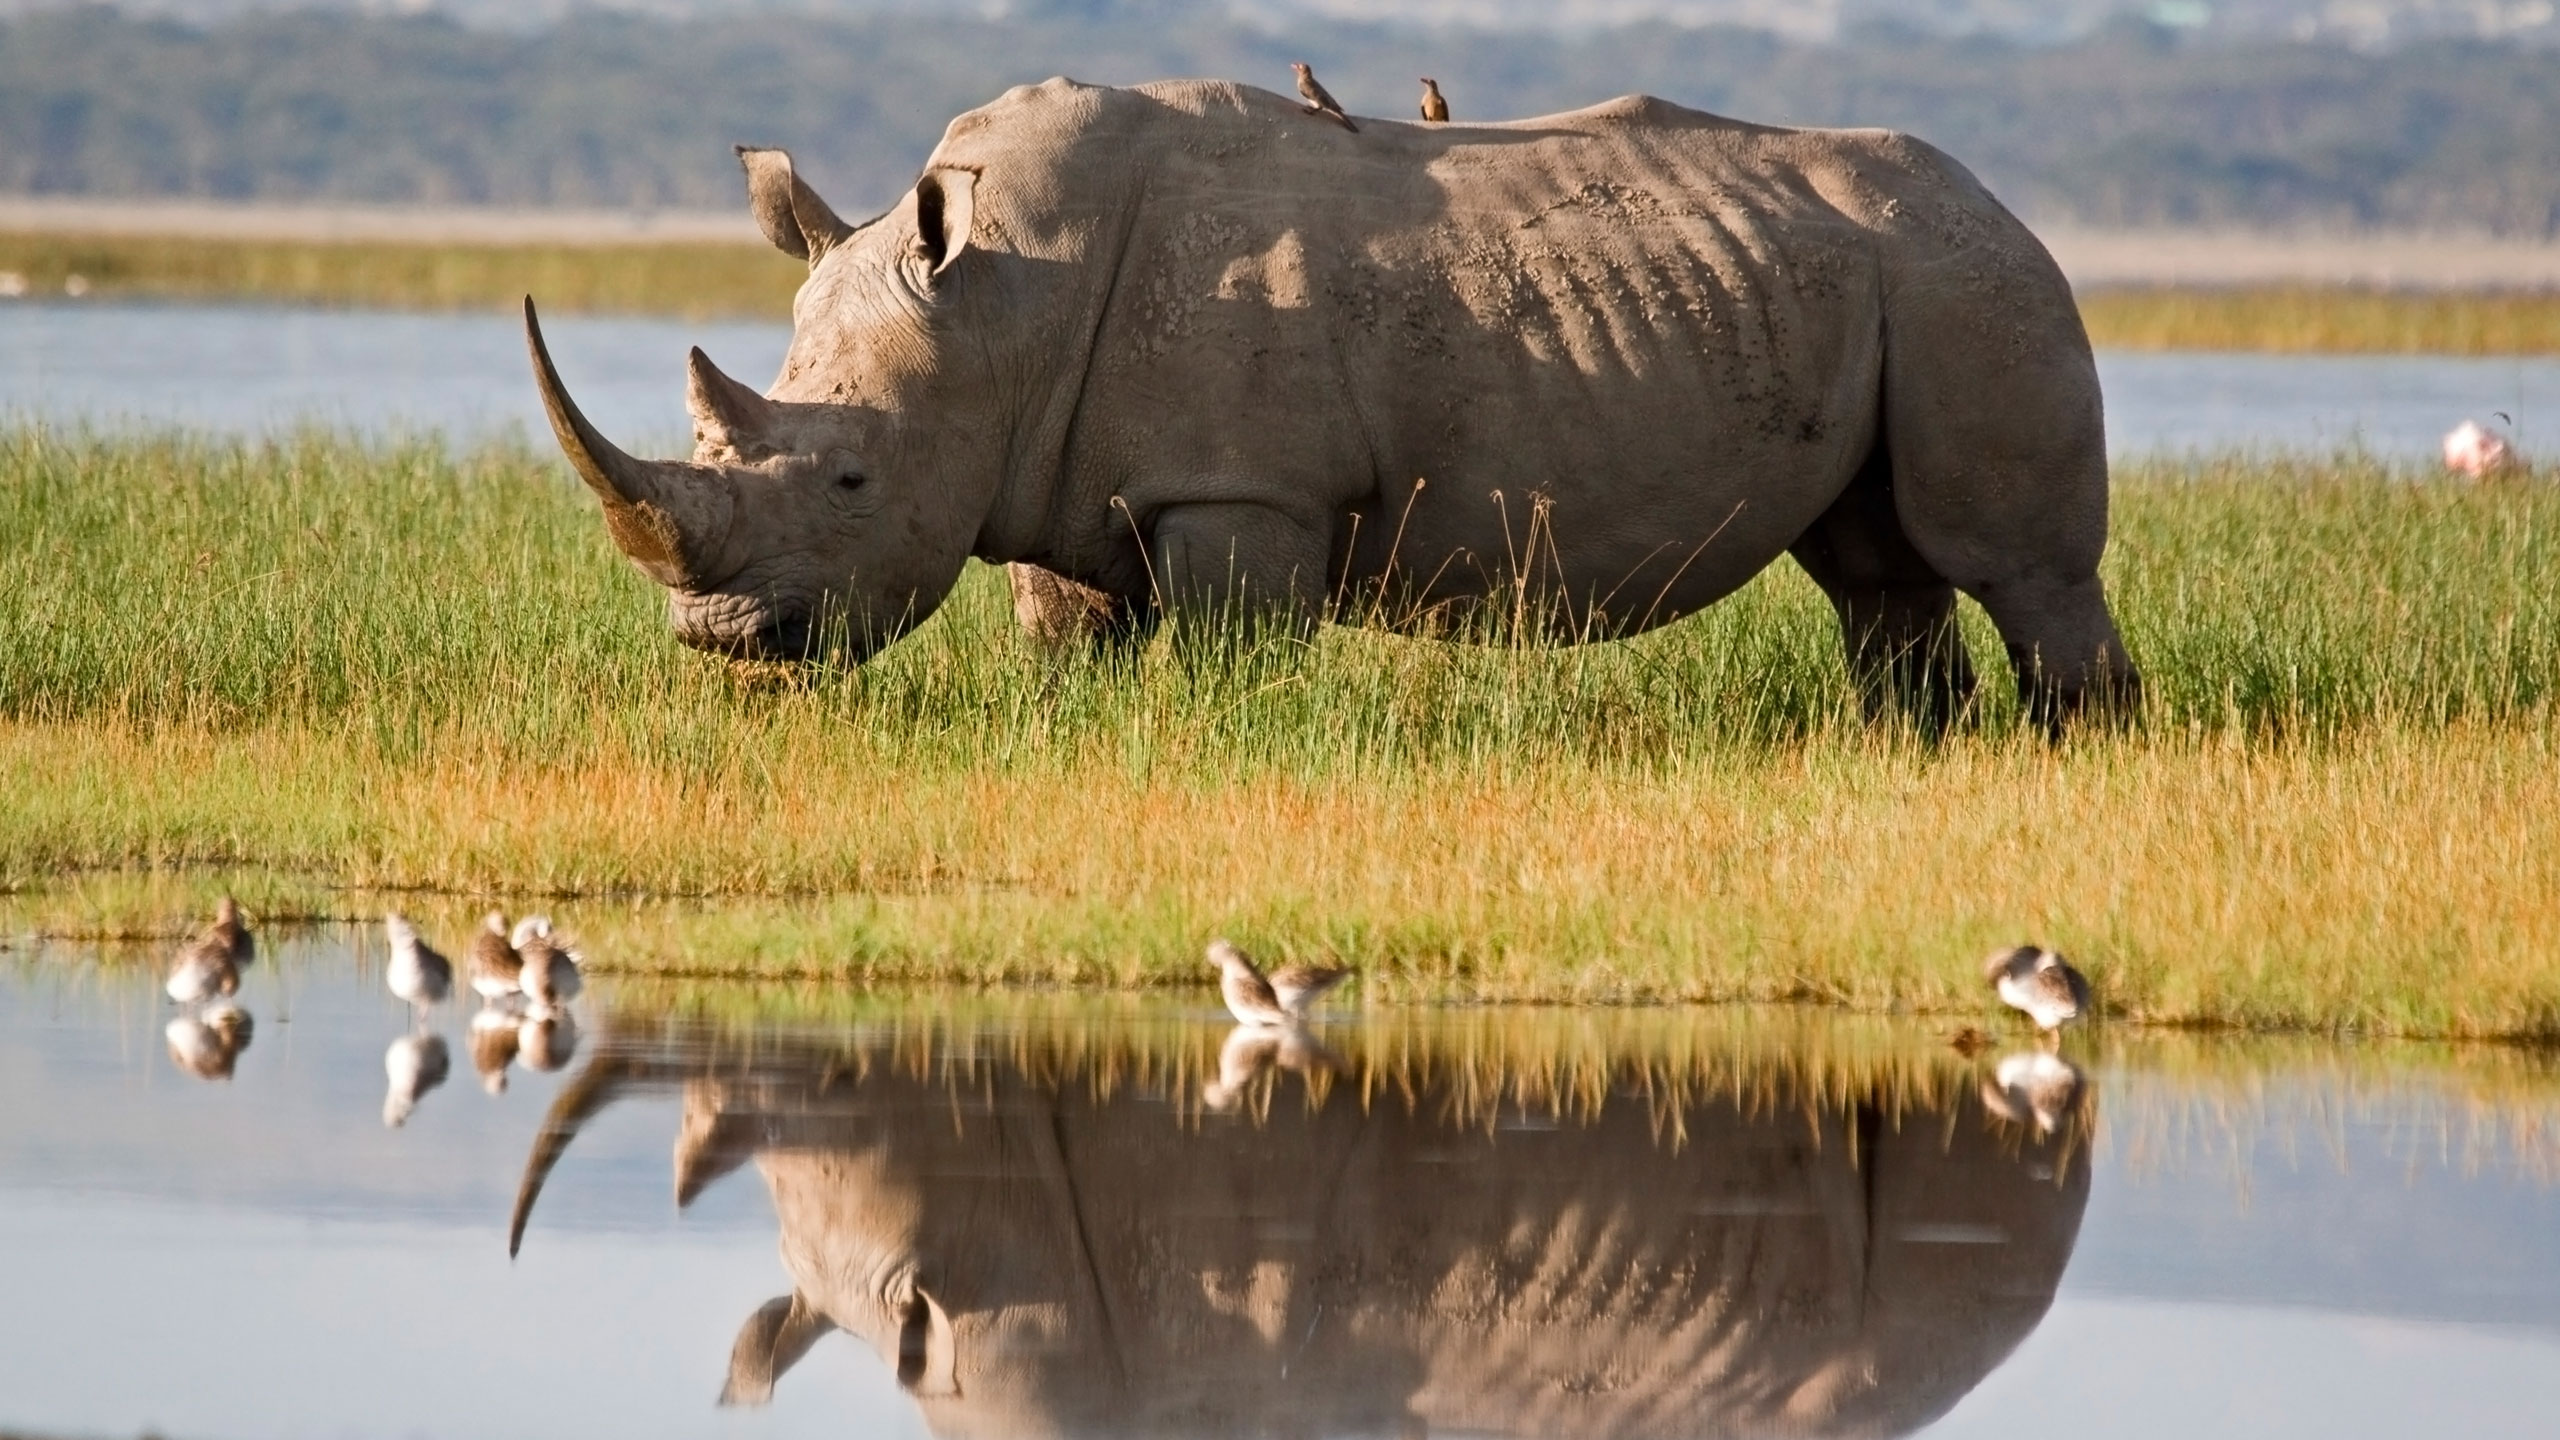 Javan rhino is an animal that lives only in Indonesia - Serious Facts